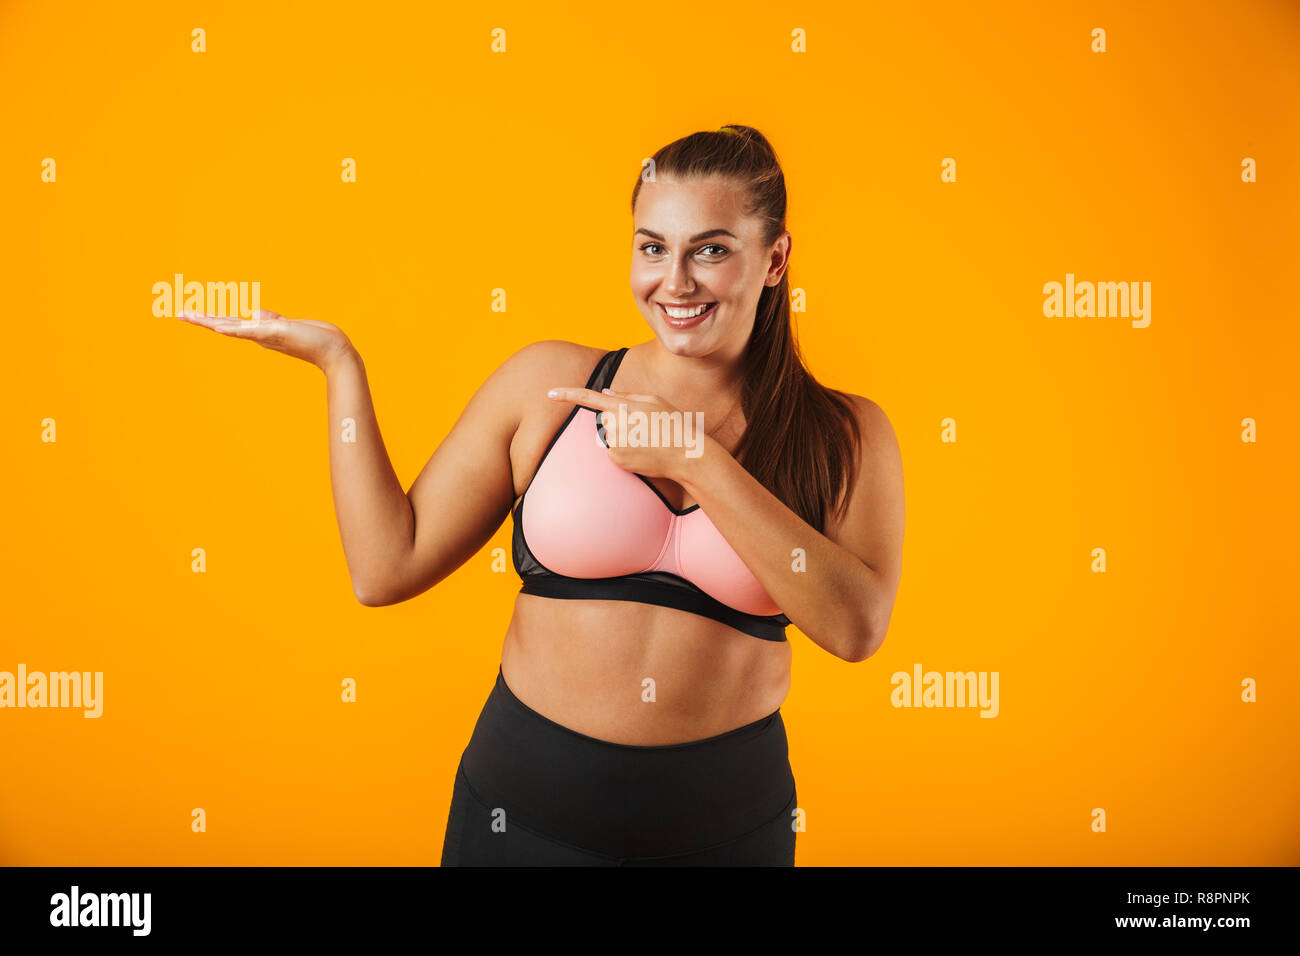 0a61c36ed0 Portrait of european chubby woman in sportive bra holding copyspace on palm  isolated over yellow background